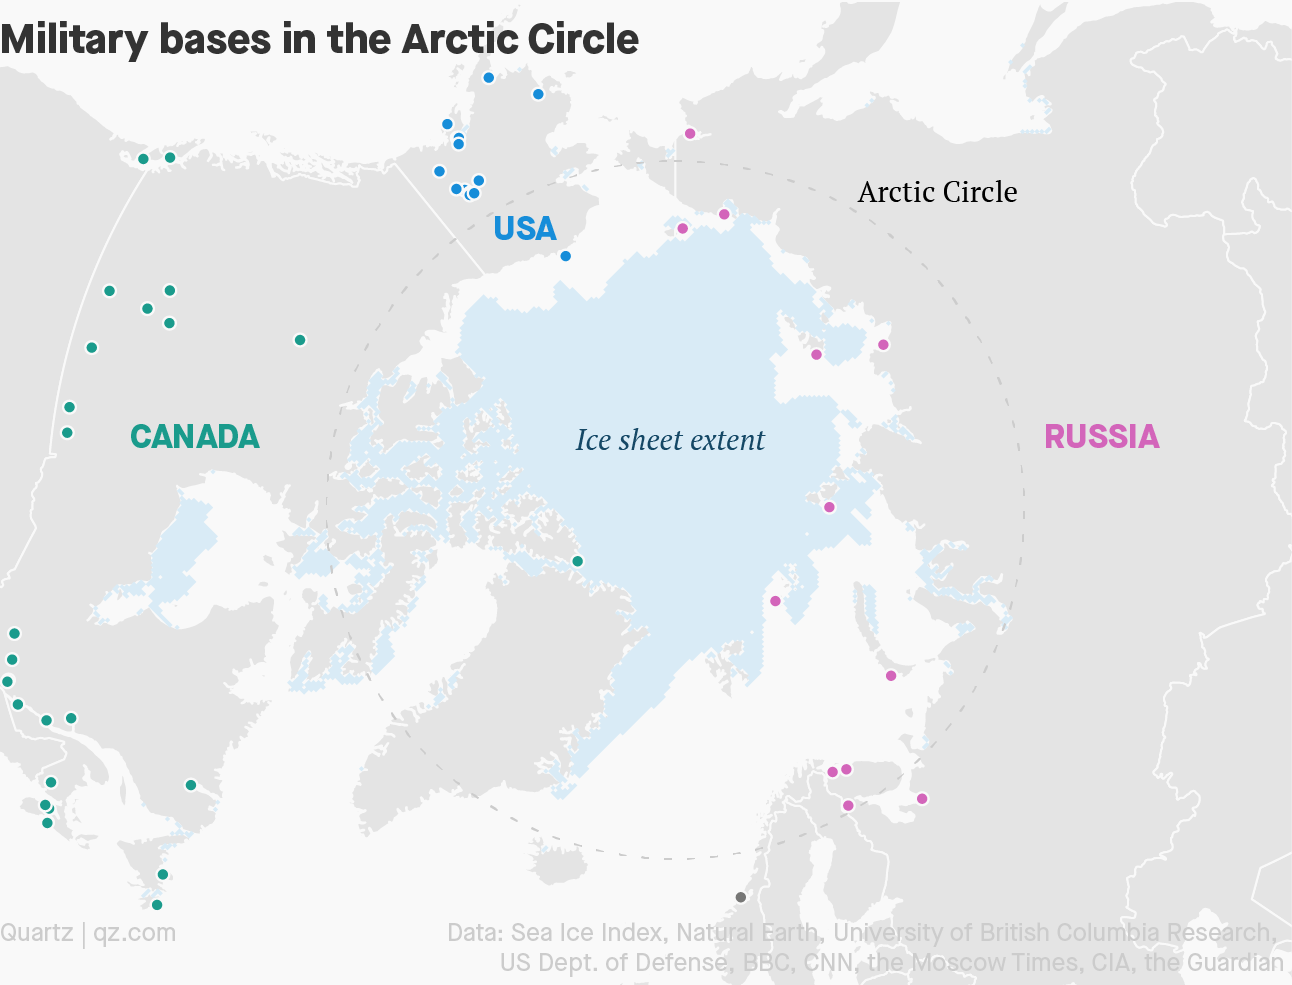 This map is a view of the Arctic Circle, showing the proximity of US, Canadian, and Russian military bases. While the US and Canada have a large number of bases, Russia—due the size of its territory—has broader and closer military access to the area.